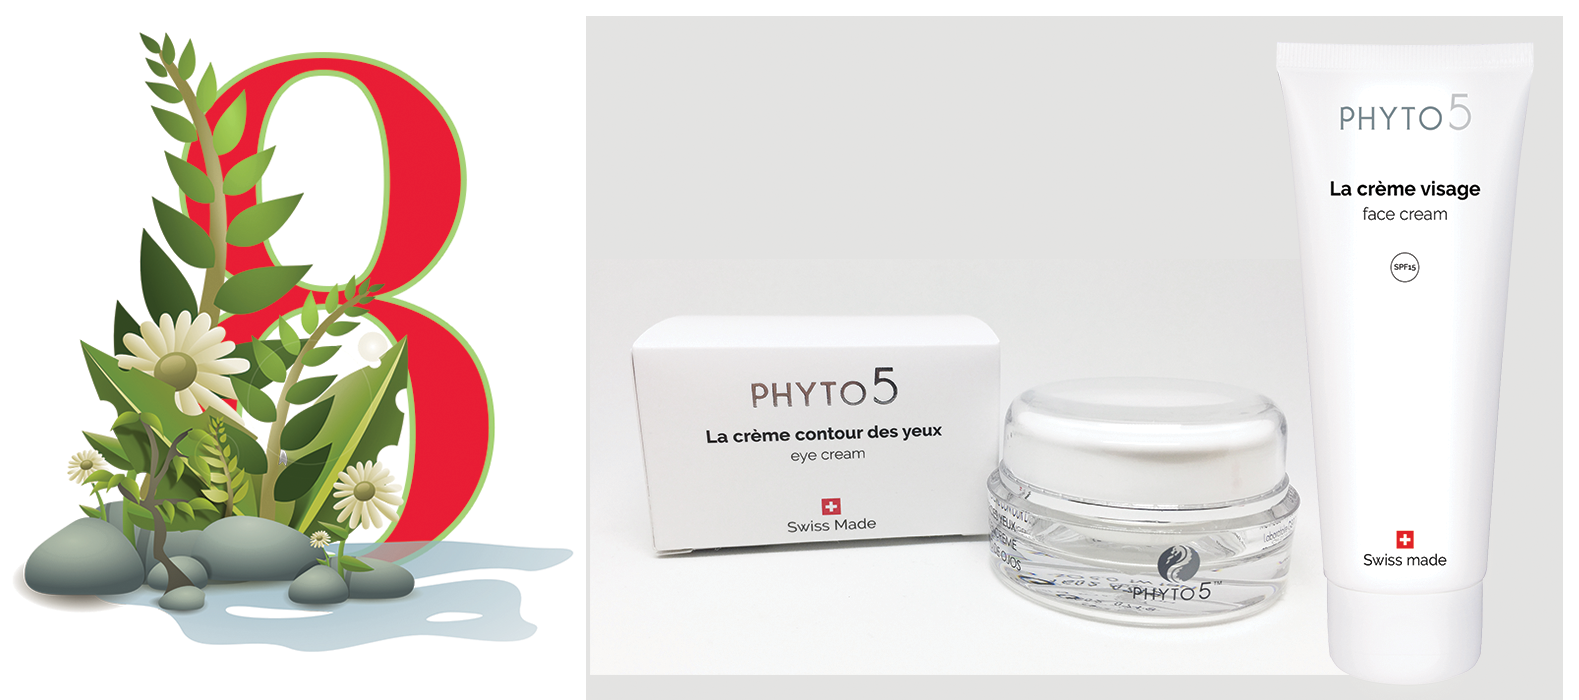 Day 8 of the Twelve Days of PHYTO5 features Eye Cream and Face Cream at a 20% discount. Save $28.40.